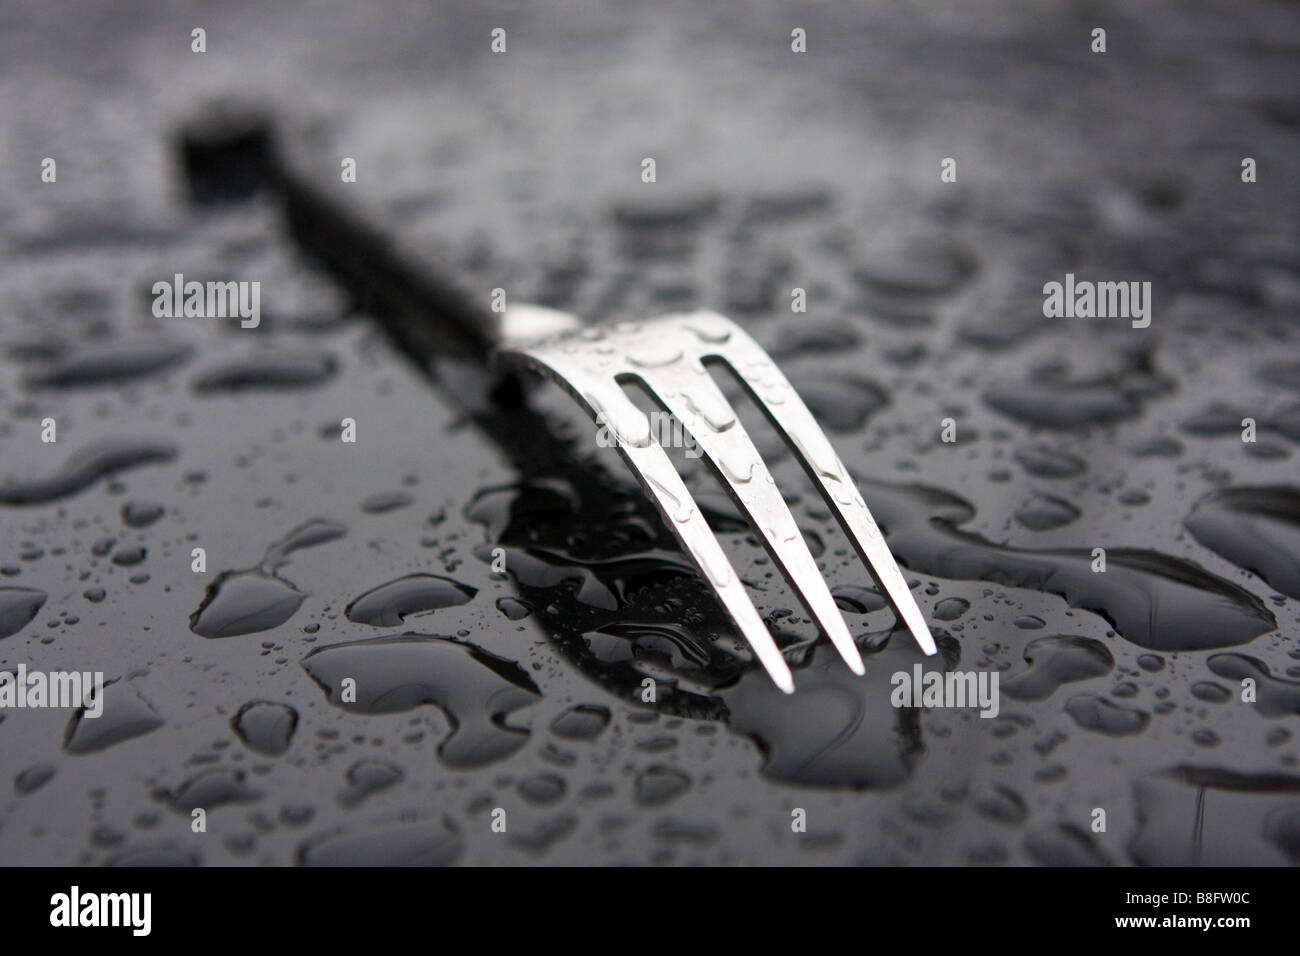 A dinner fork on a smooth metal surface with rain drops - Stock Image